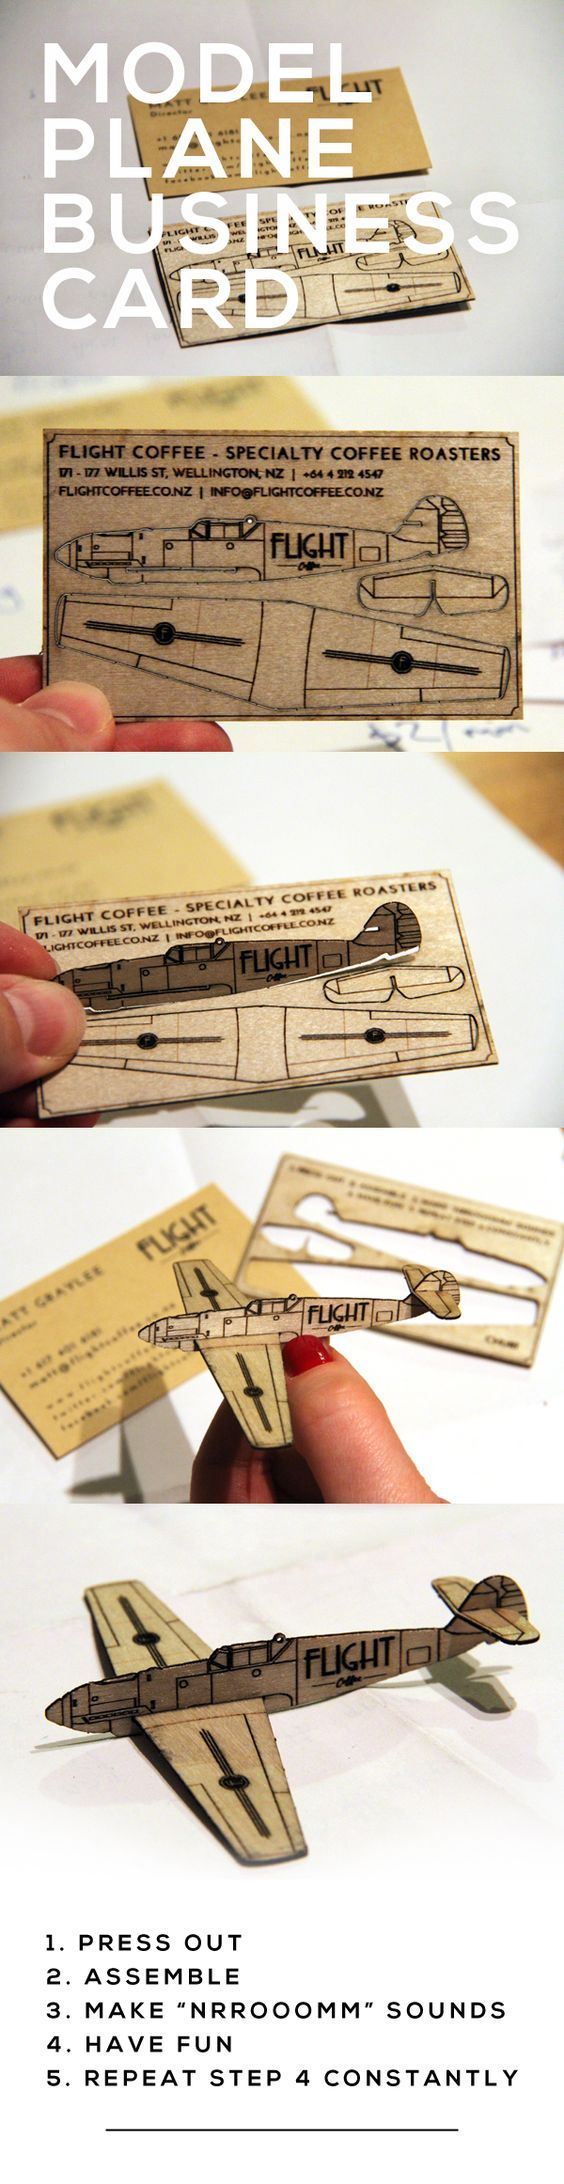 Flight Coffee's new business cards are a little model planes! Laser cut wood 0.9mm plywood, with instructions that call for you to: 1. Press out 2. Assemble 3. Make